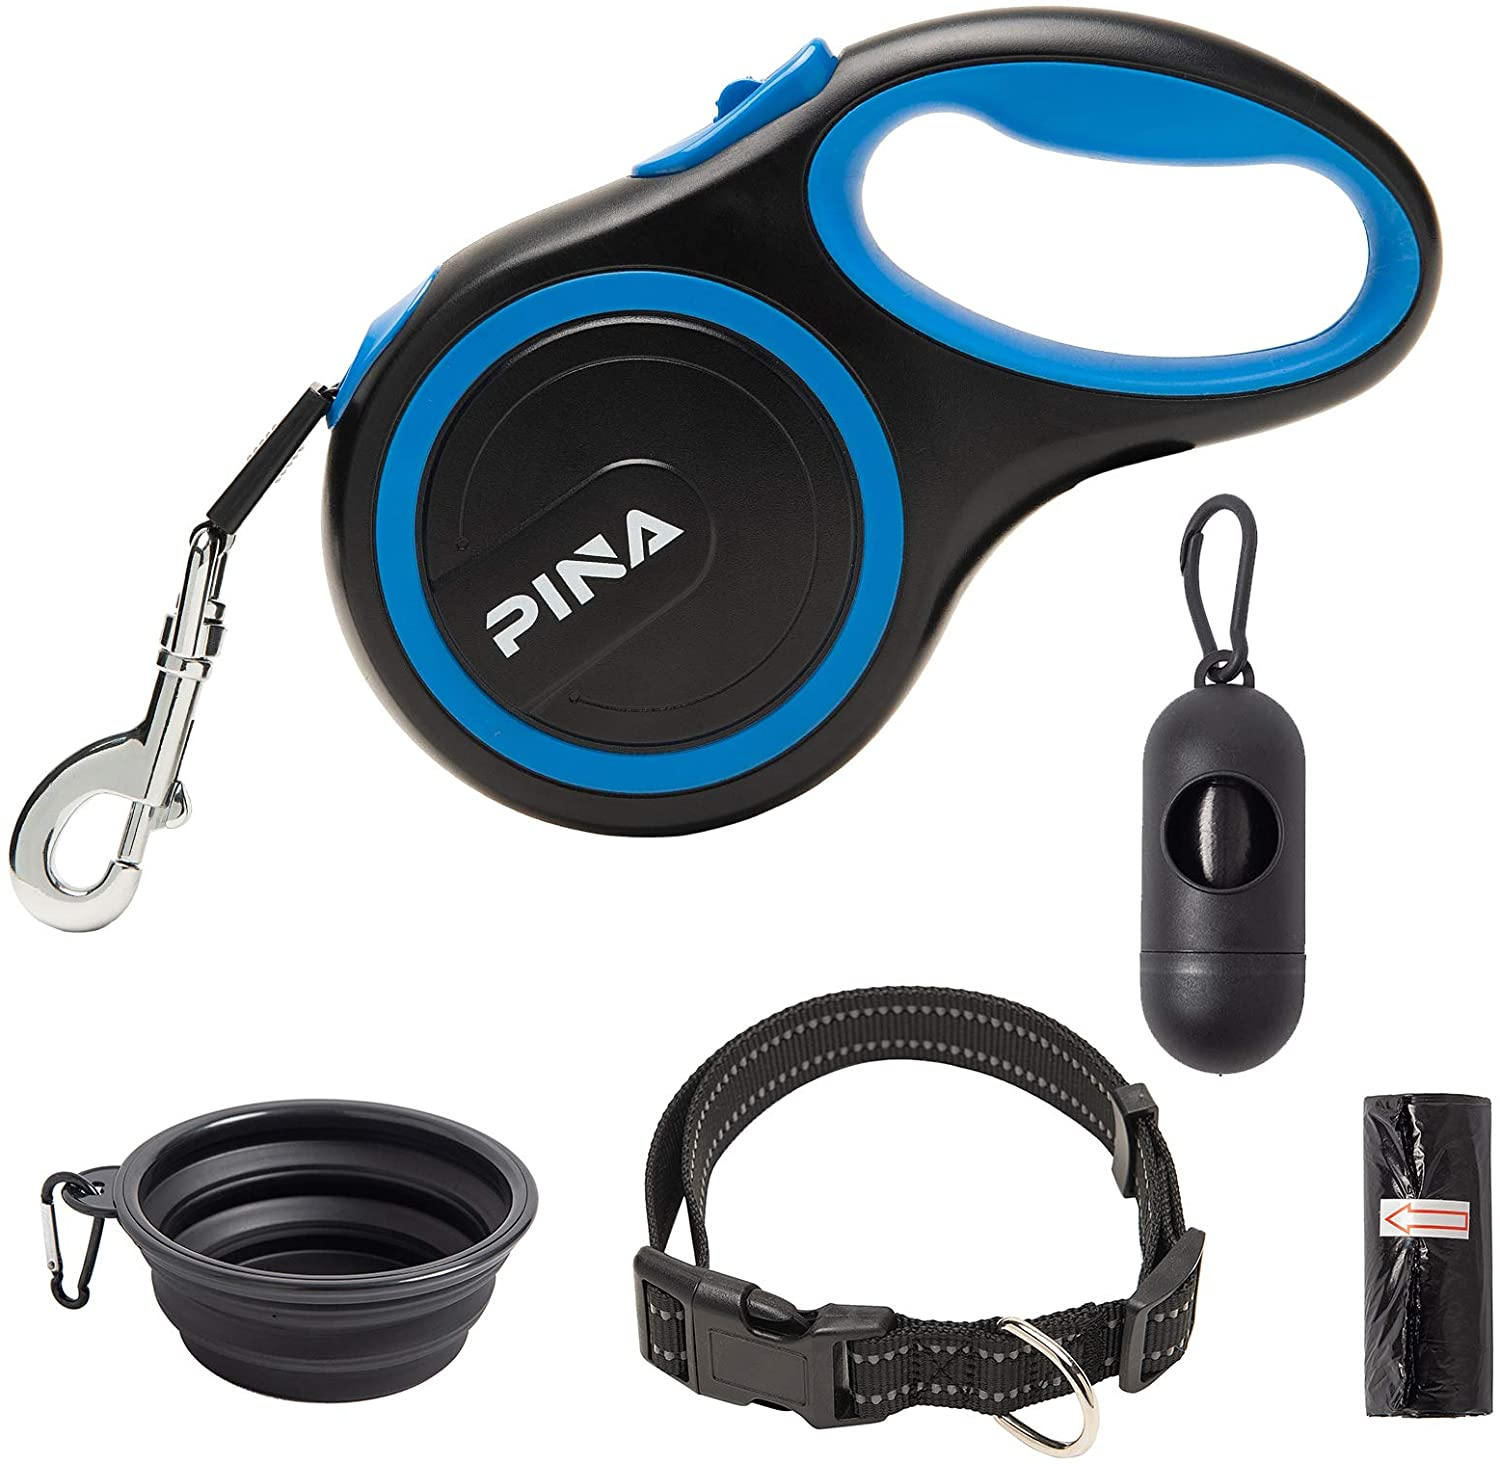 PINA Retractable Dog New arrival Leash 26ft Larg Medium Small for Classic